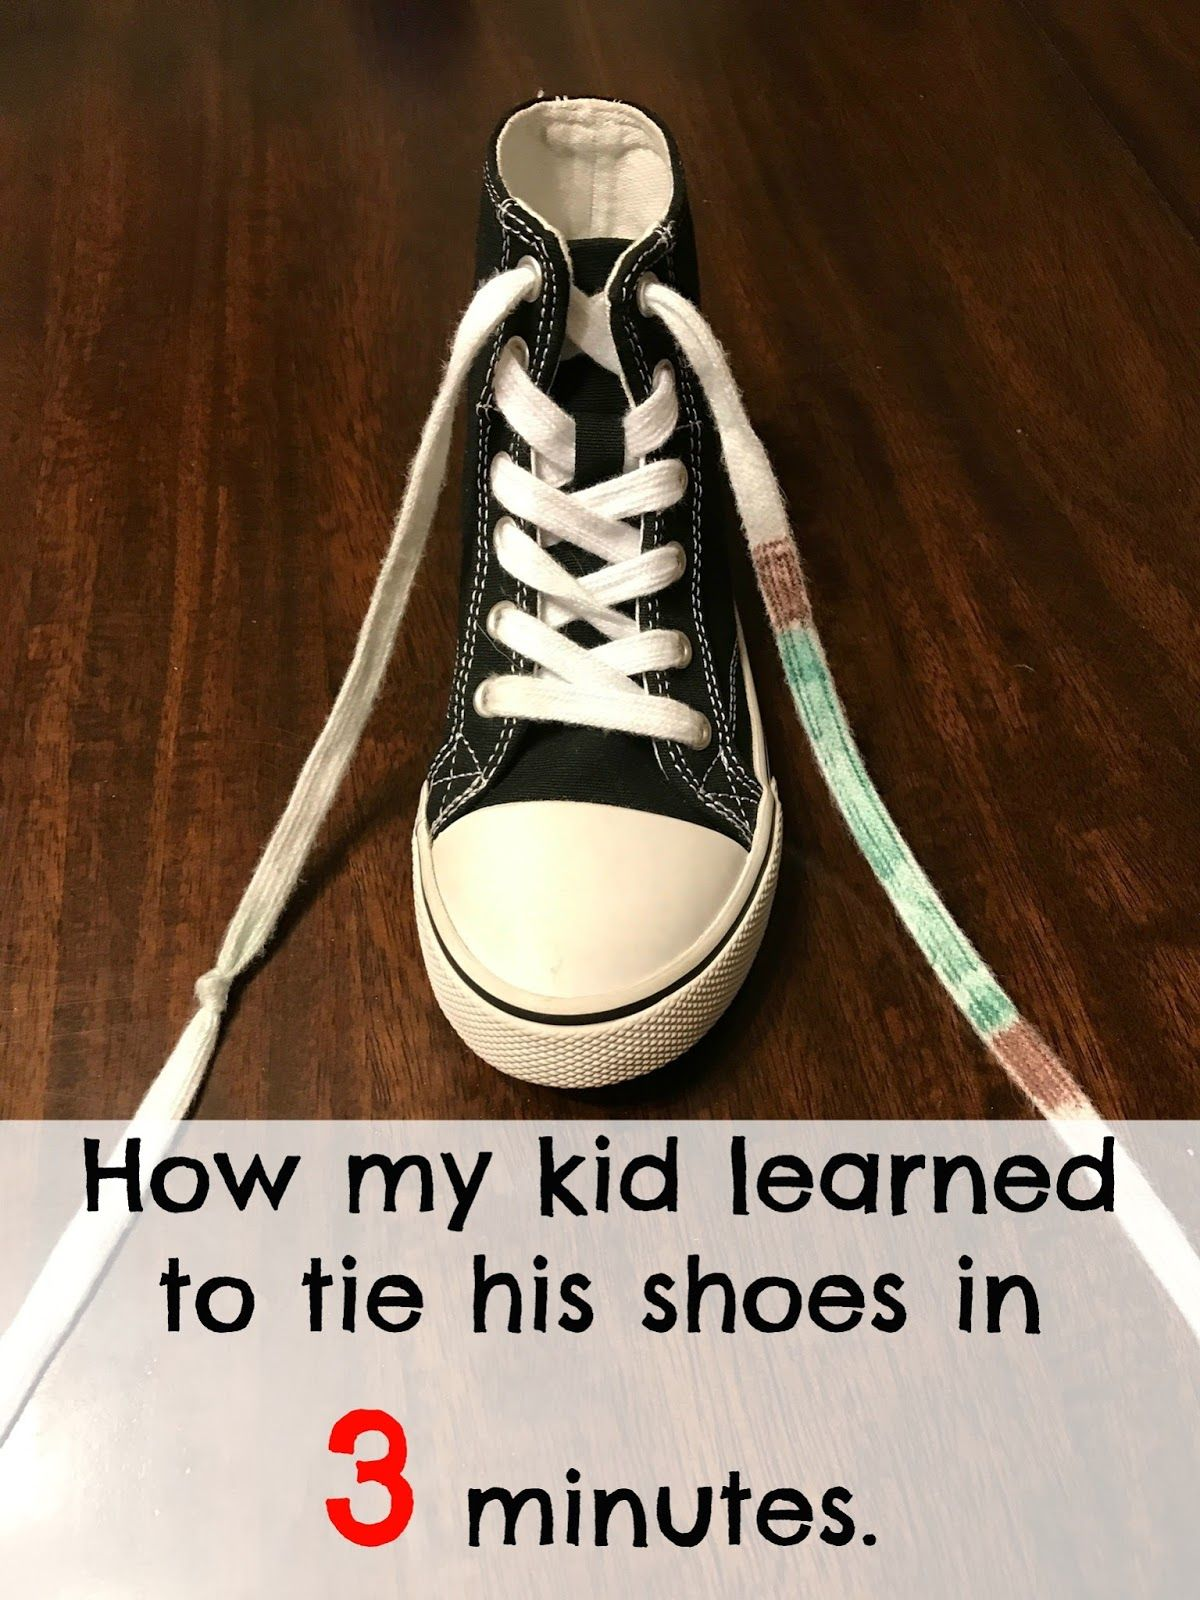 How To Teach A Child To Tie Shoes In 3 Minutes